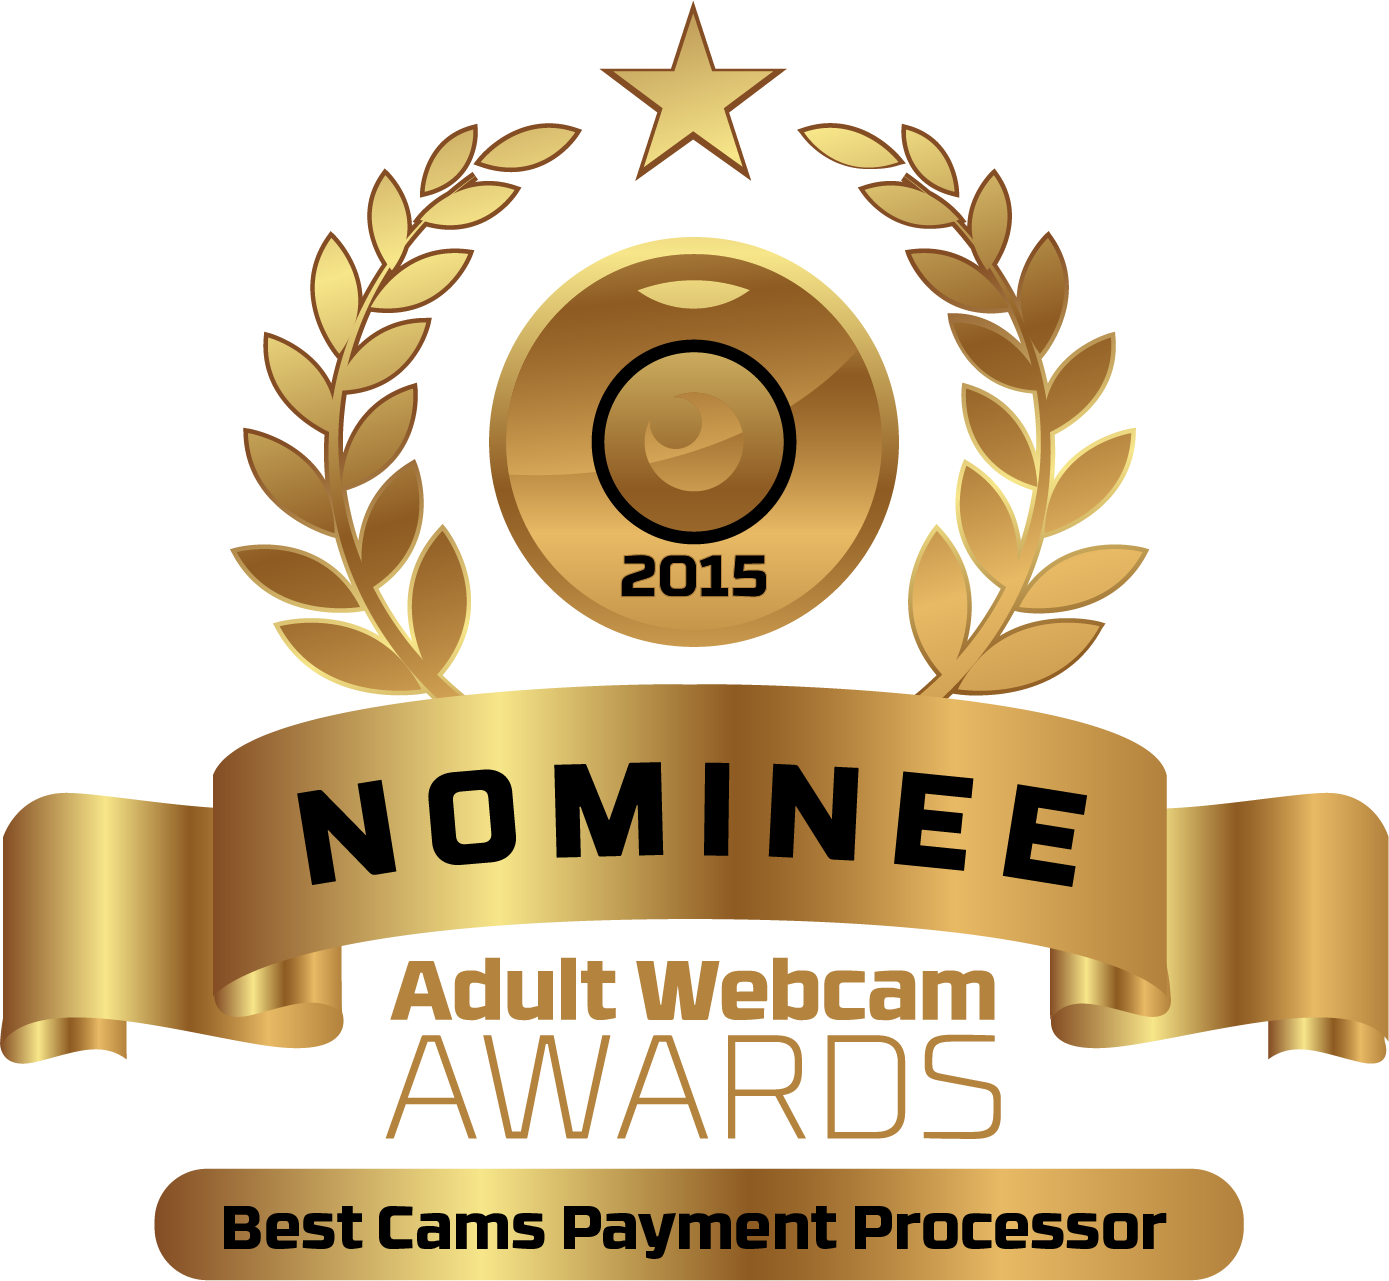 Best Cams Payment Processor Nominee Badge